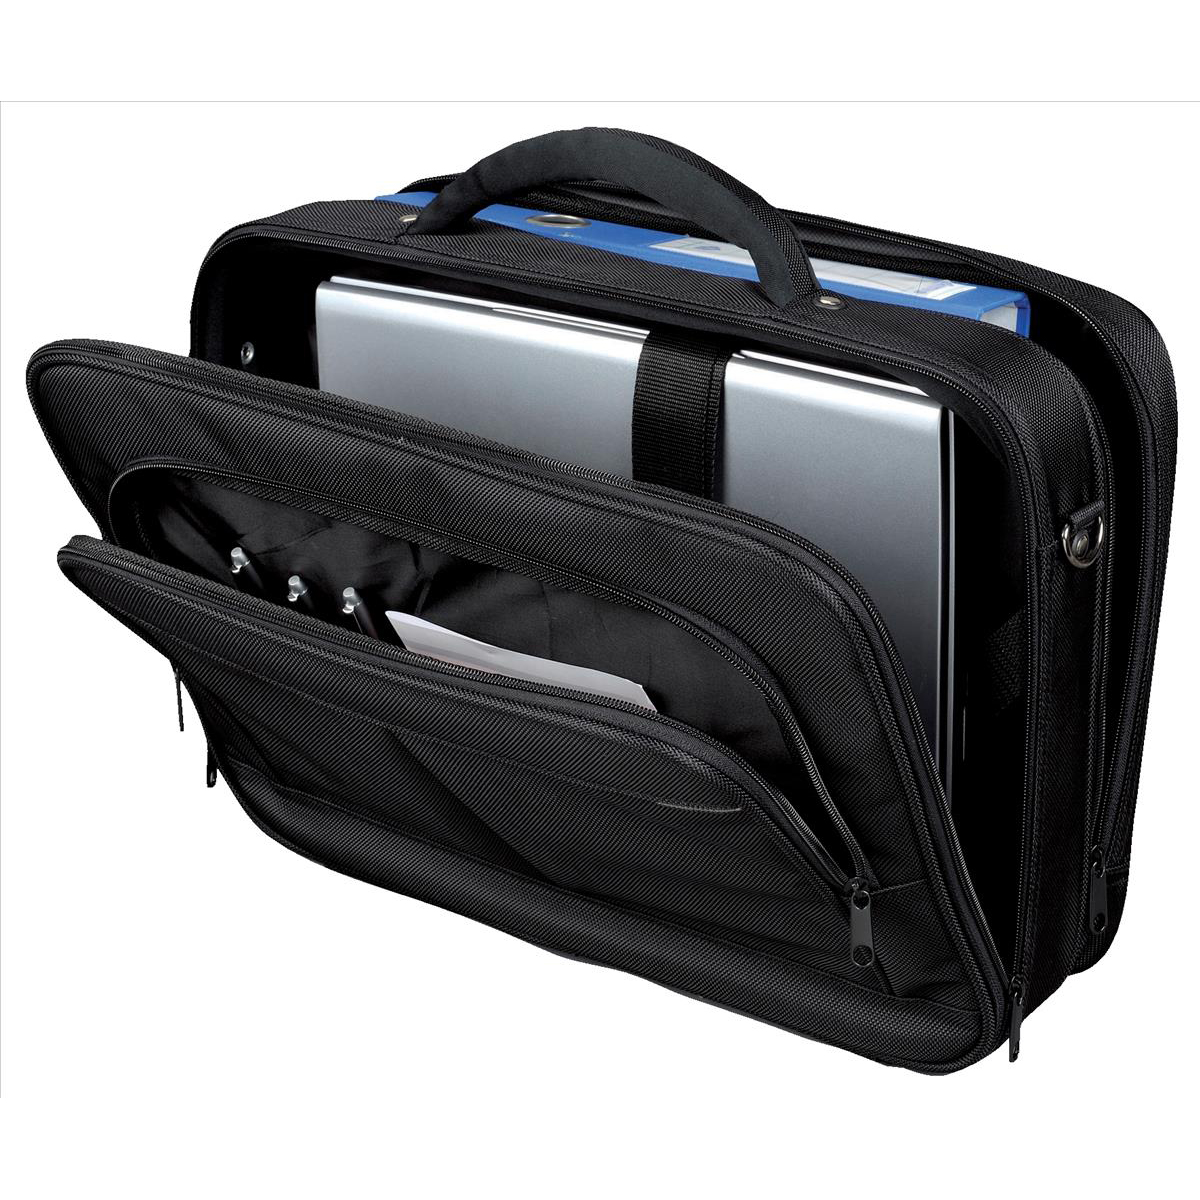 Lightpak Executive Laptop Bag Padded Multi-section Nylon Capacity 17in Black Ref 46029